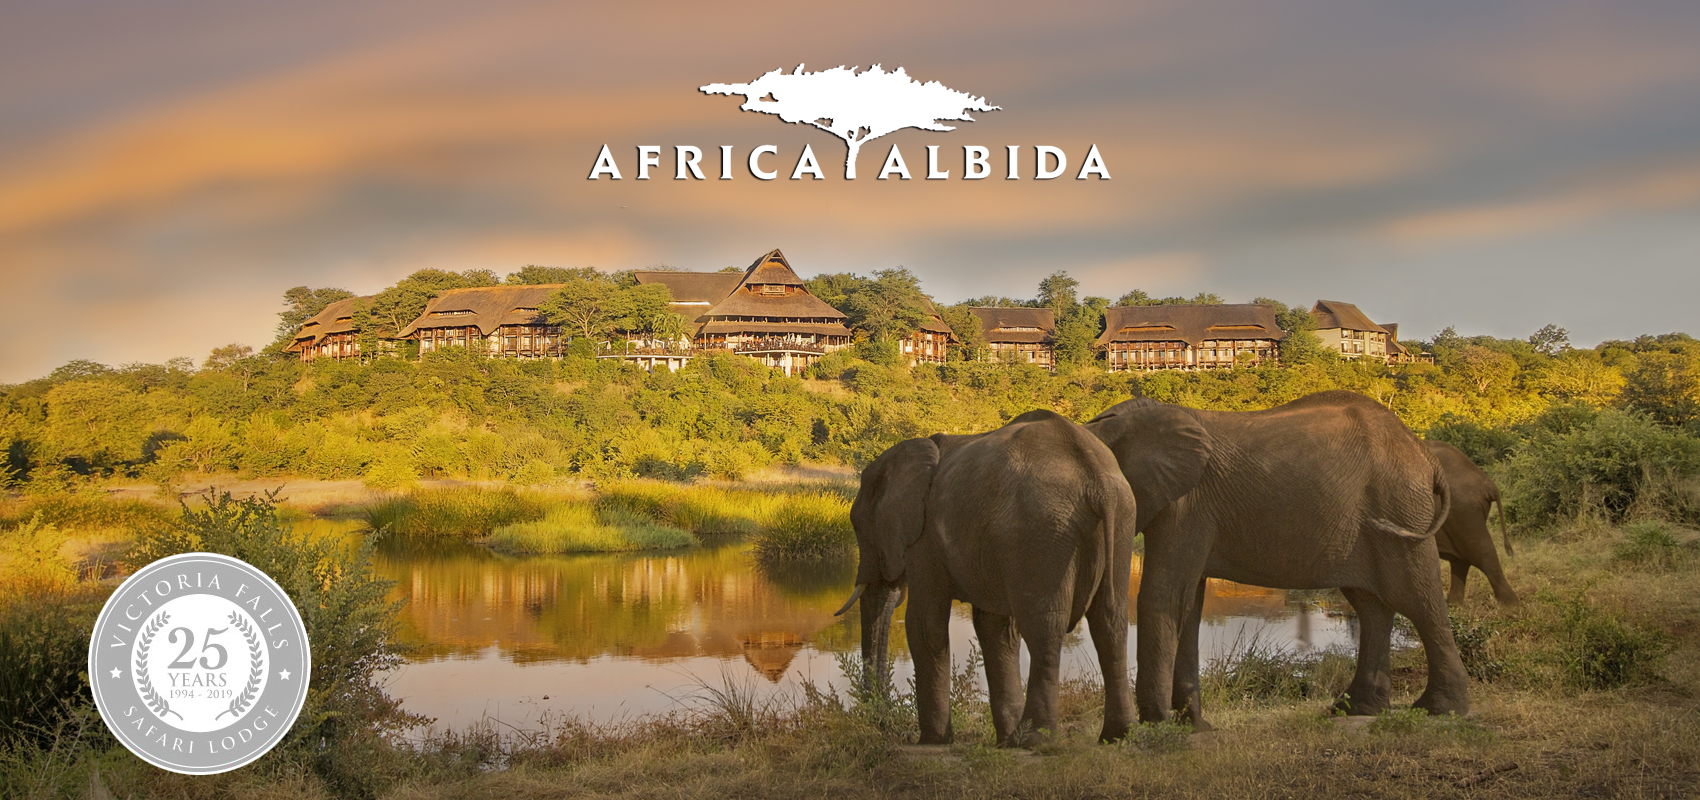 Africa_Albida-Specials-Product-Page